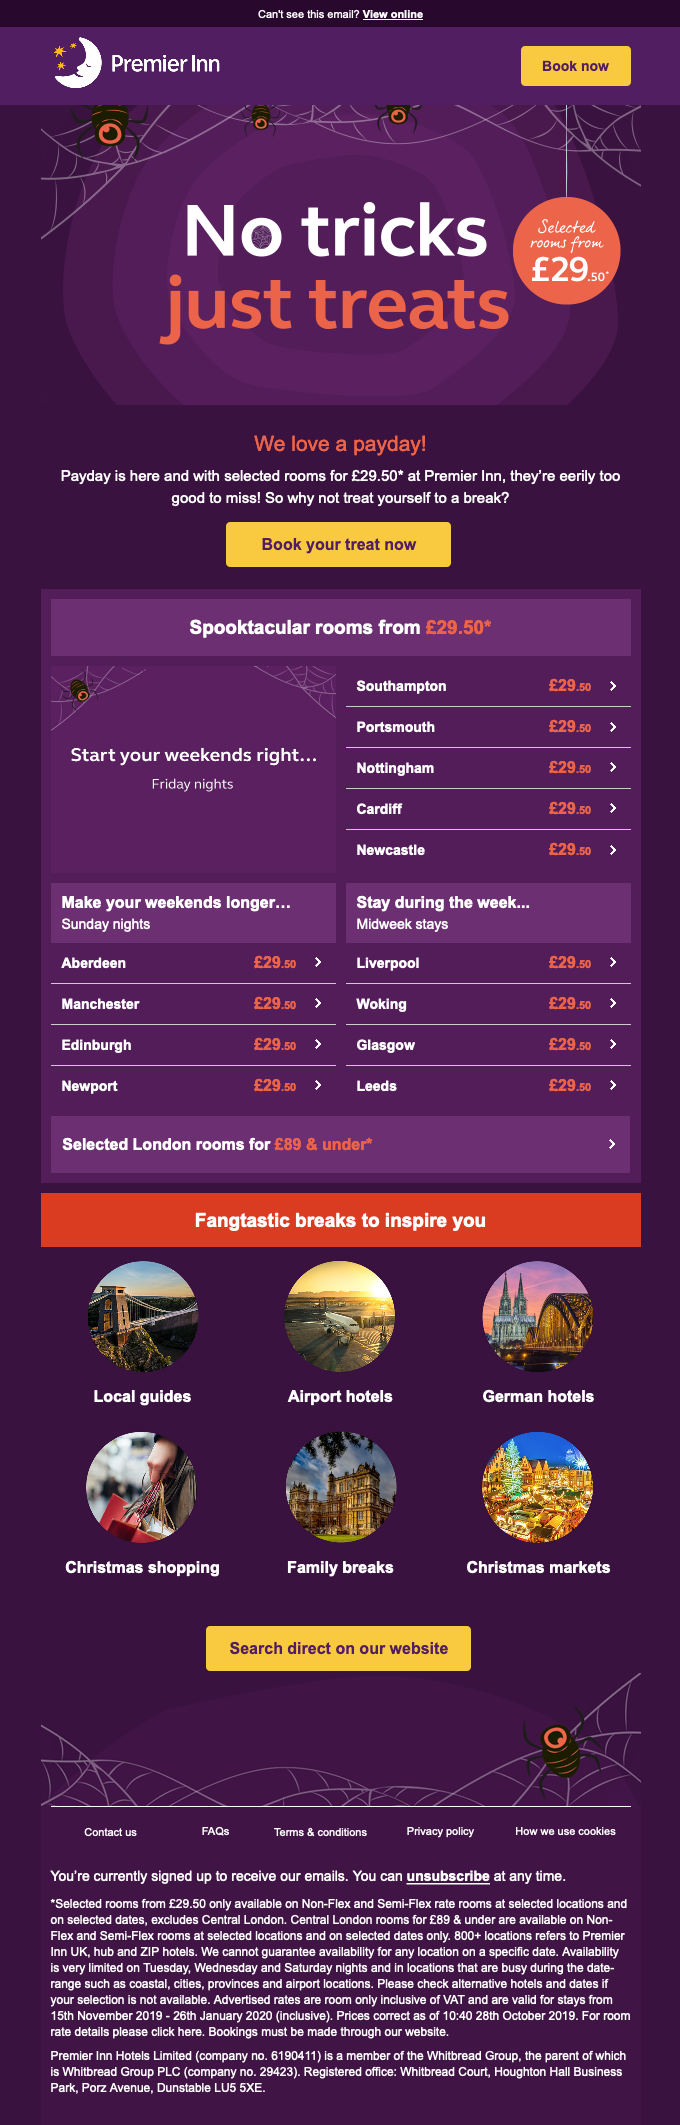 Halloween newsletter containing deals from Premier Inn.